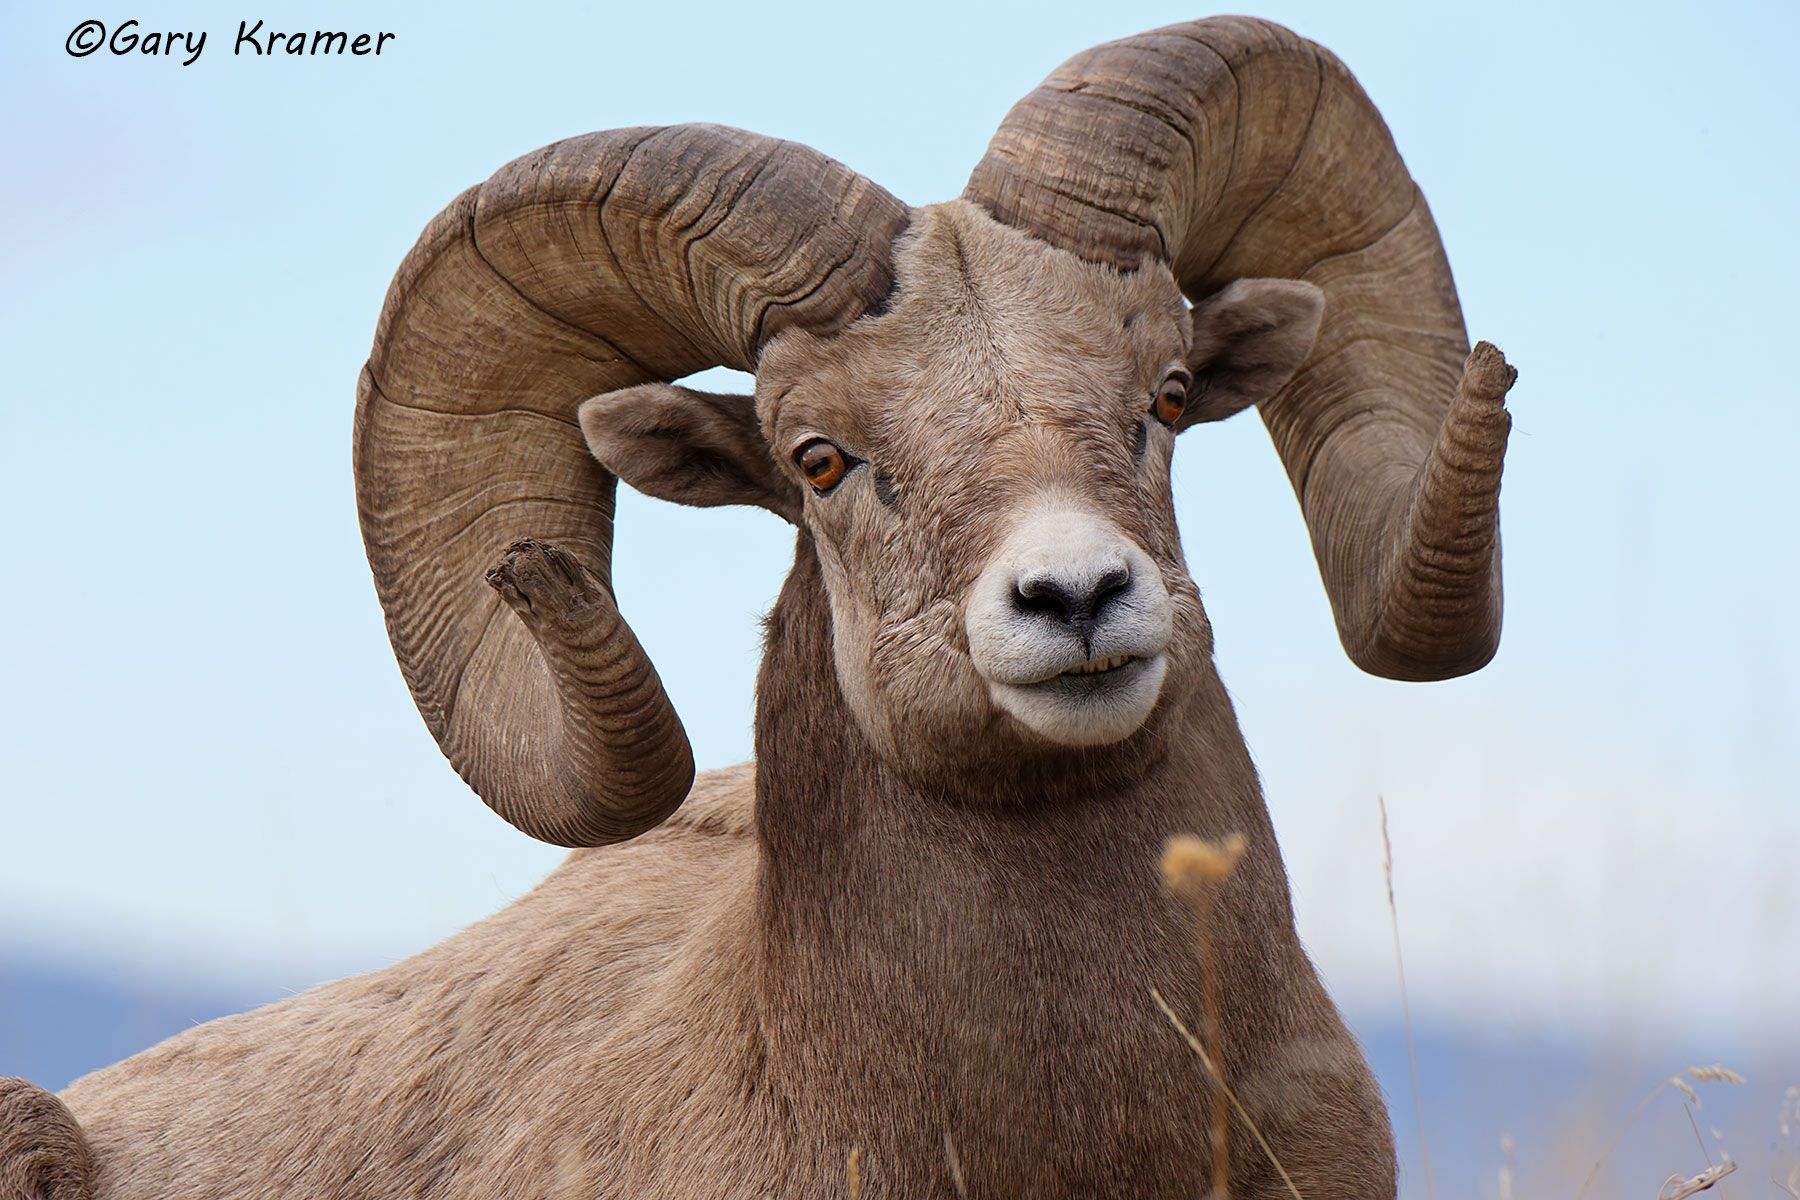 Rocky Mountain Bighorn (Ovis canadensis canadensis) - NMSBr#1185d